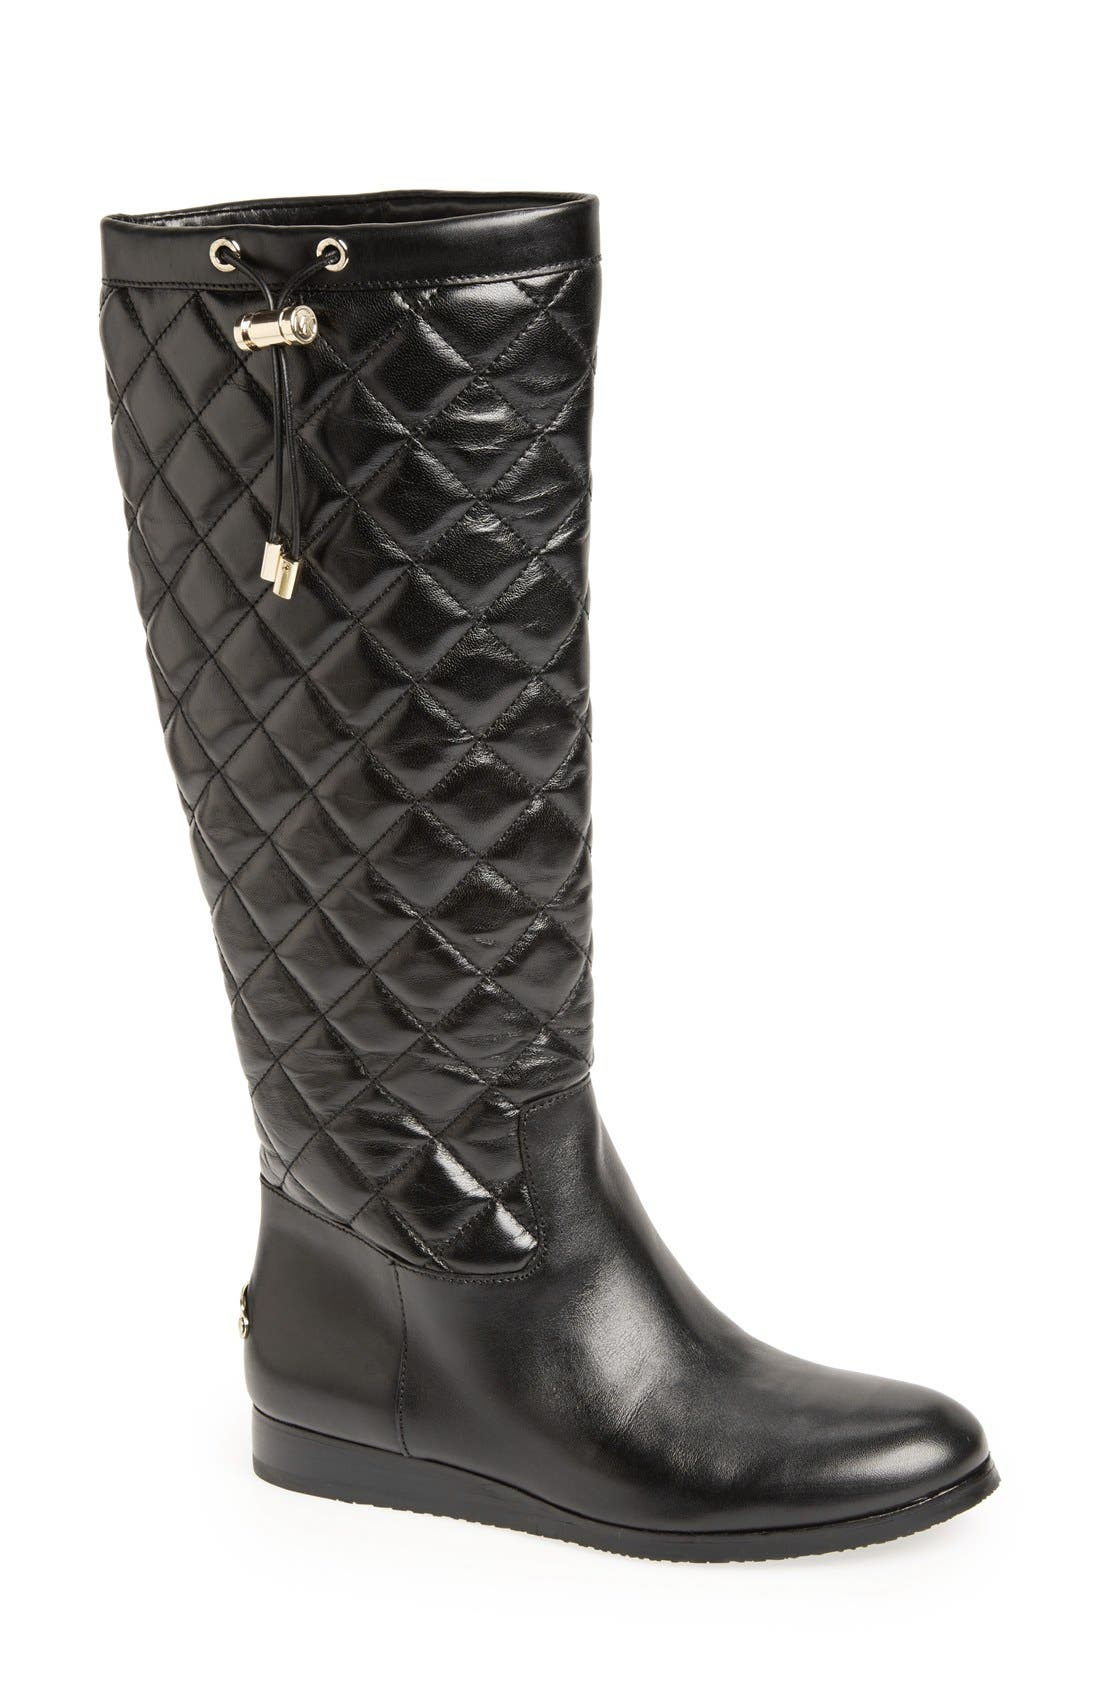 Alternate Image 1 Selected - MICHAEL Michael Kors 'Lizzie' Quilted Leather Knee High Boot (Women)